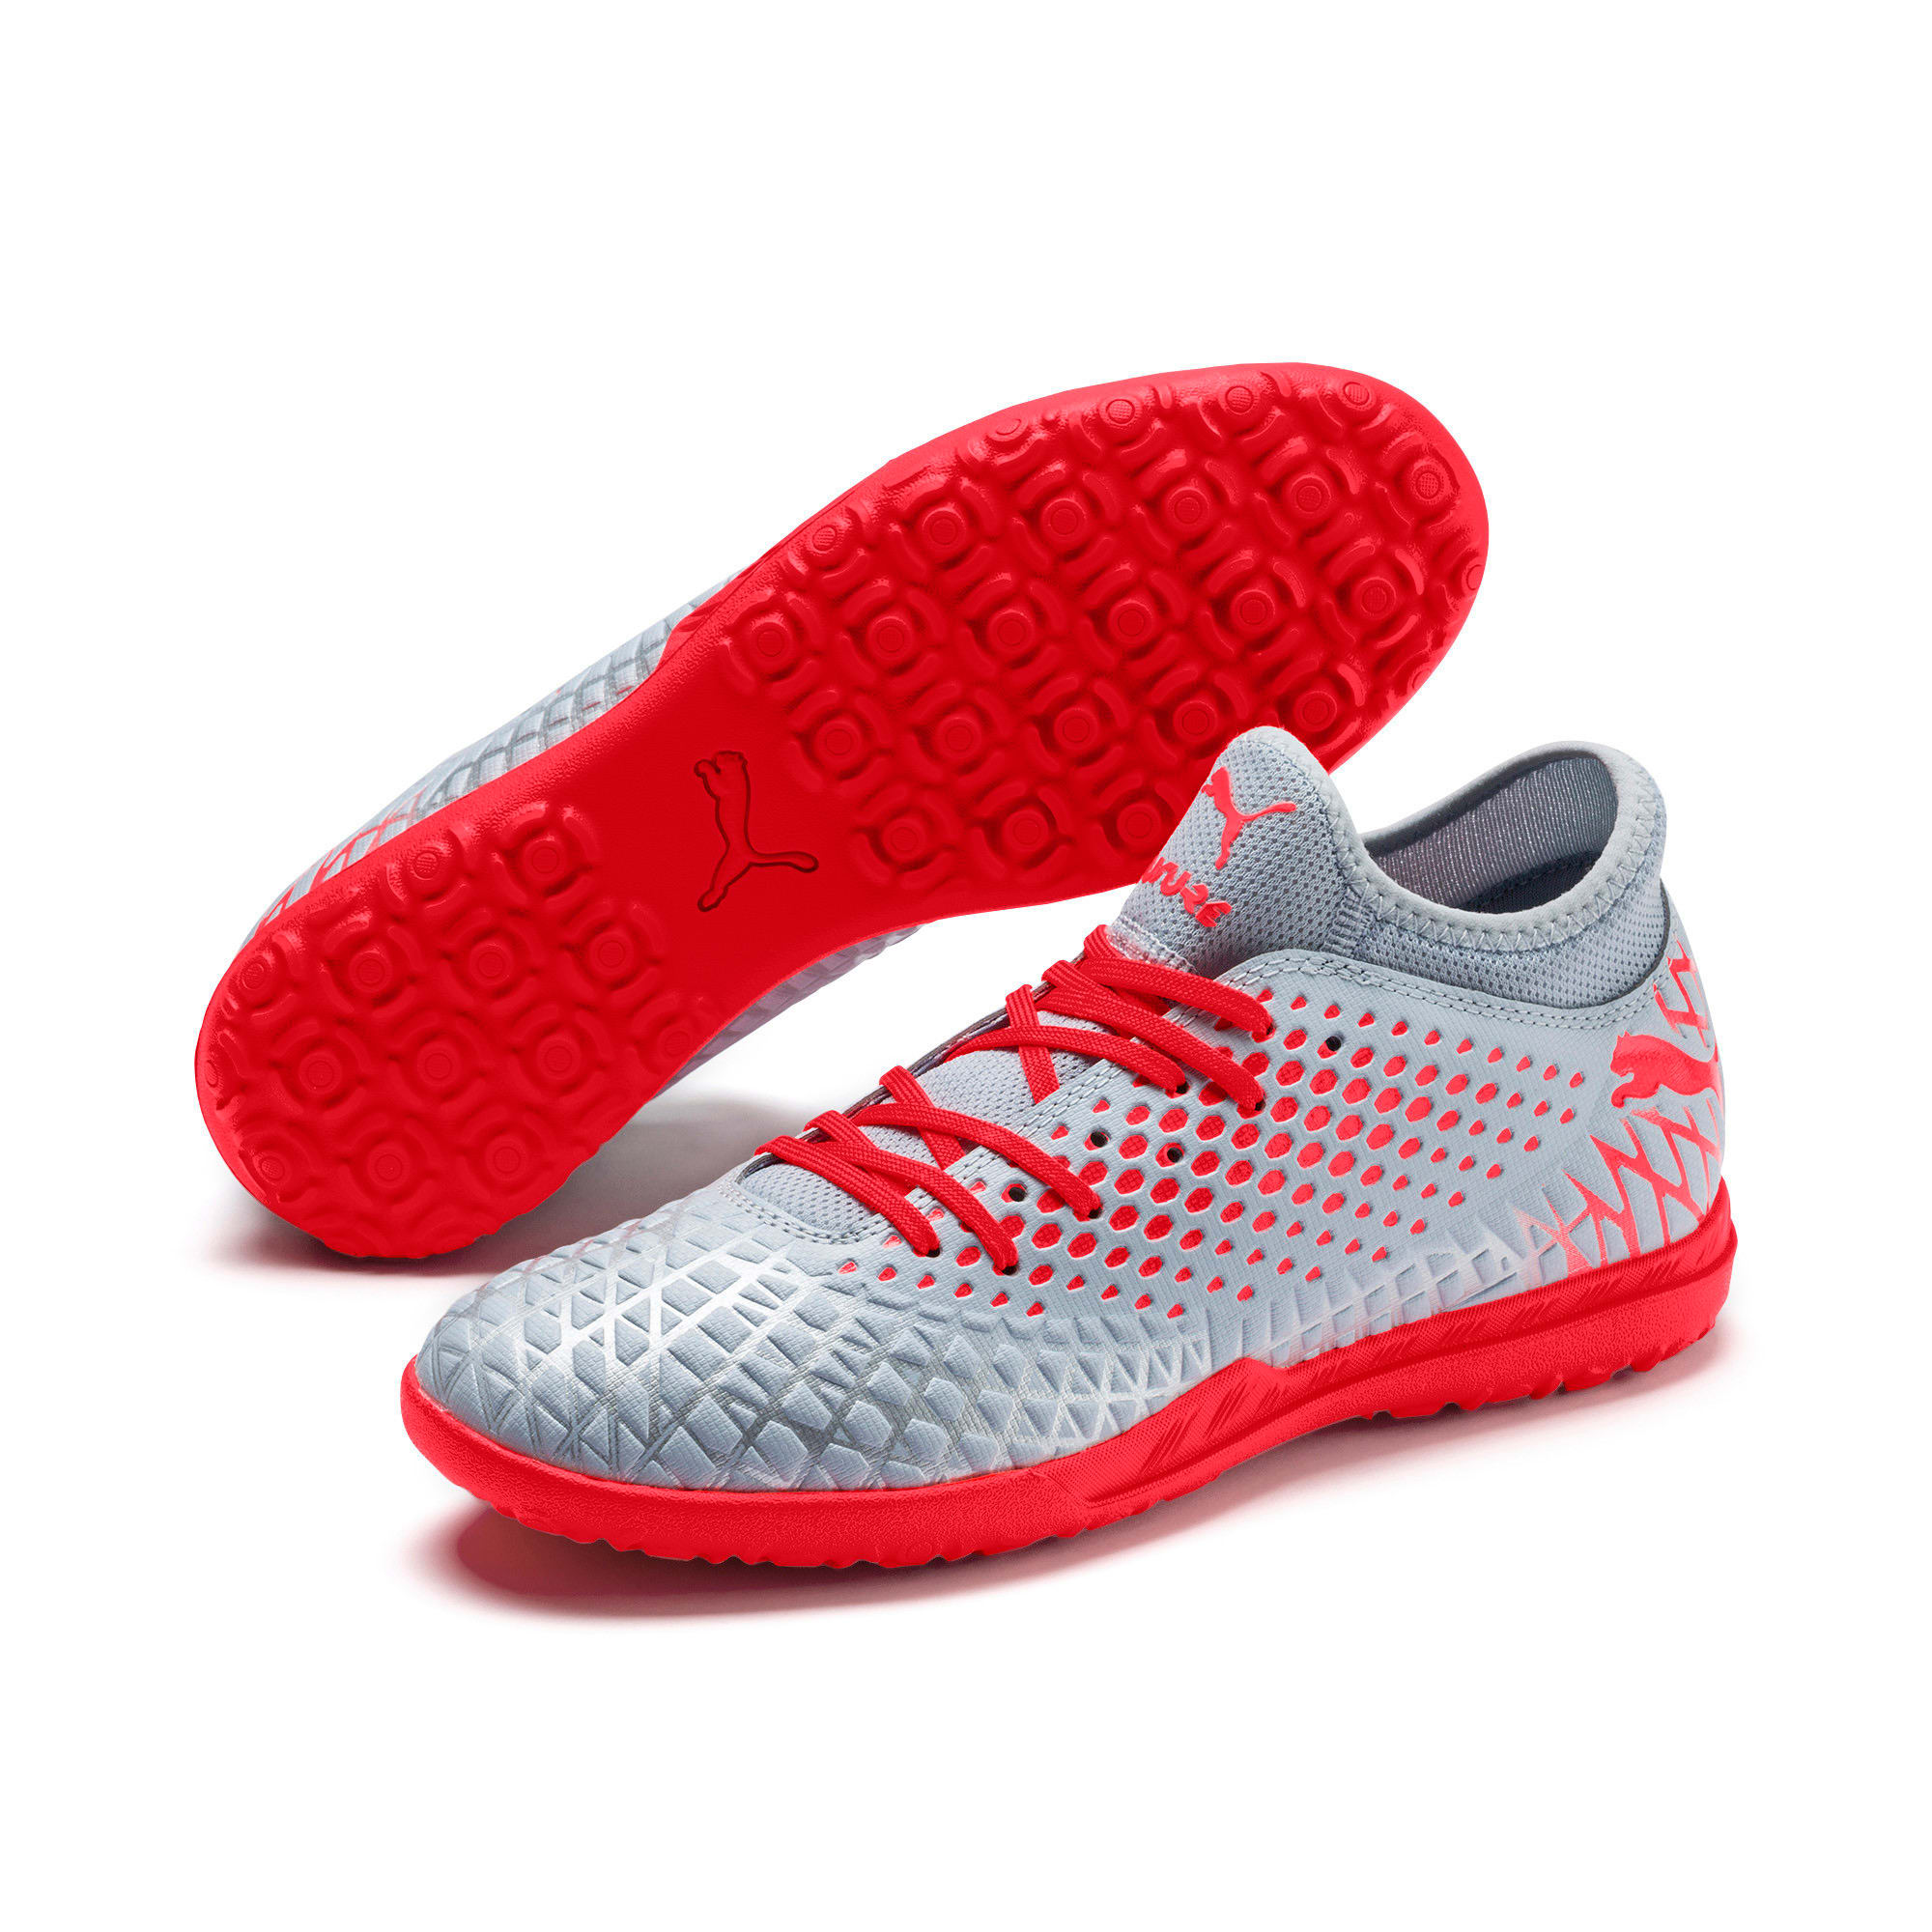 Thumbnail 3 of FUTURE 4.4 TT Herren Fußballschuhe, Glacial Blue-Nrgy Red, medium